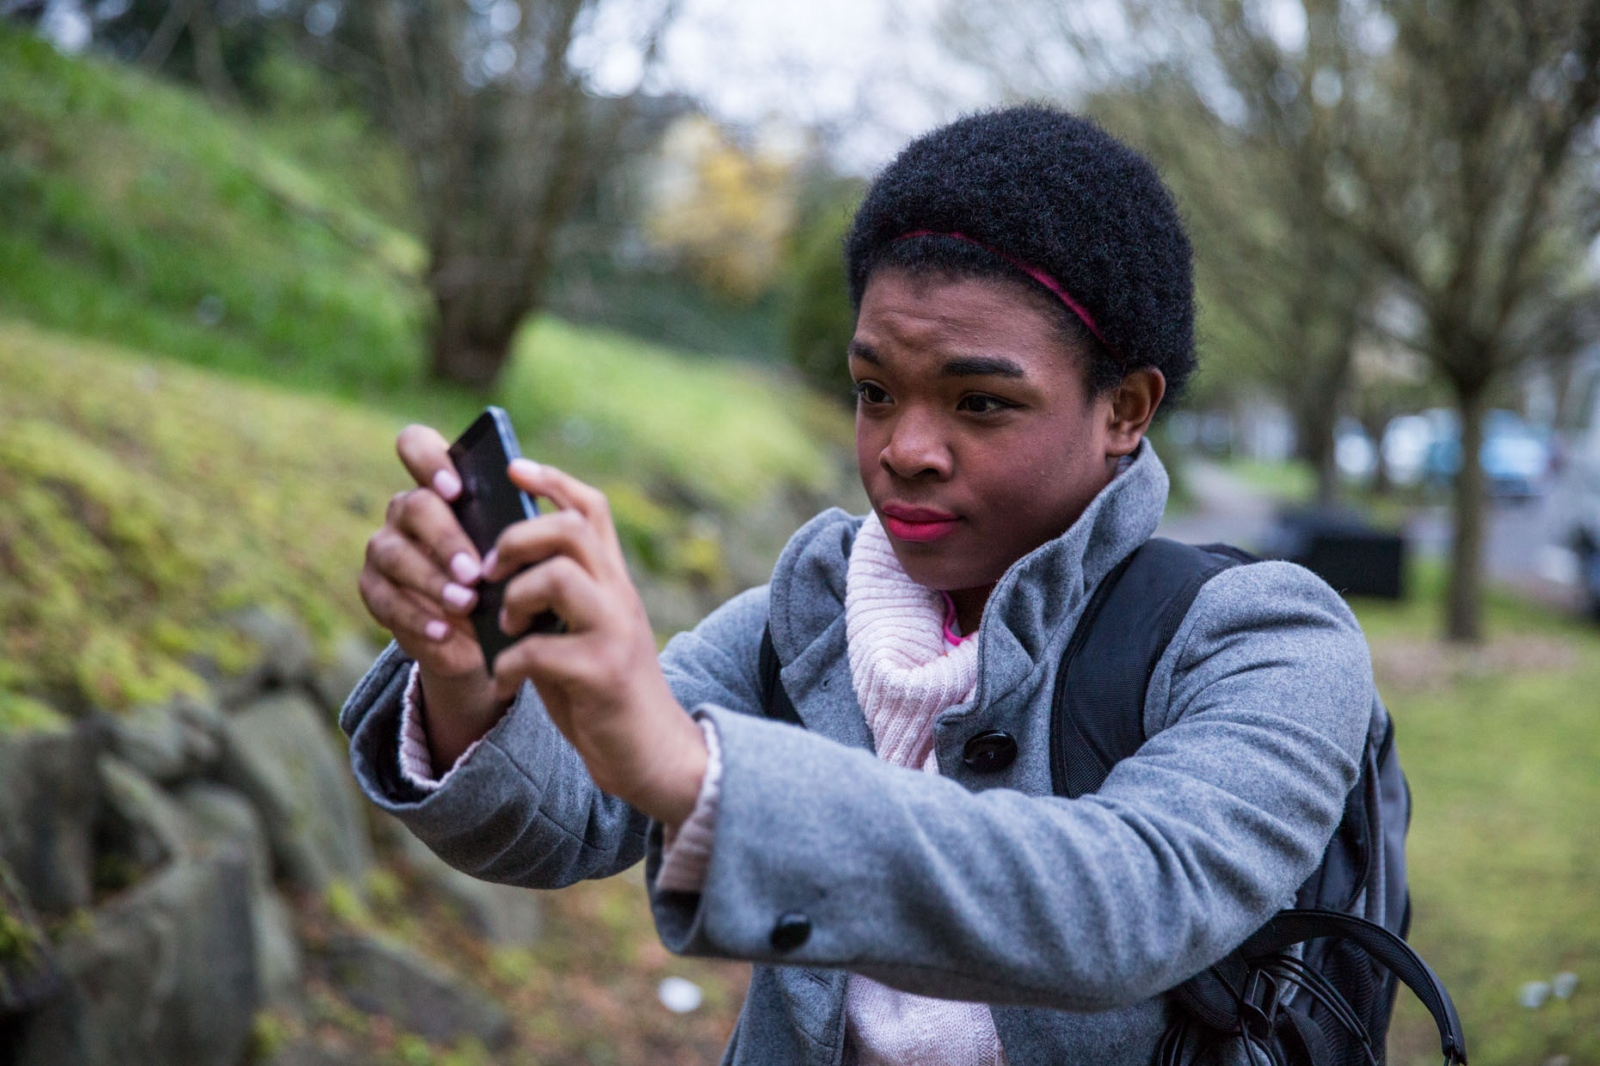 Marcelas takes a selfie on the way to school.  For CNN Digital